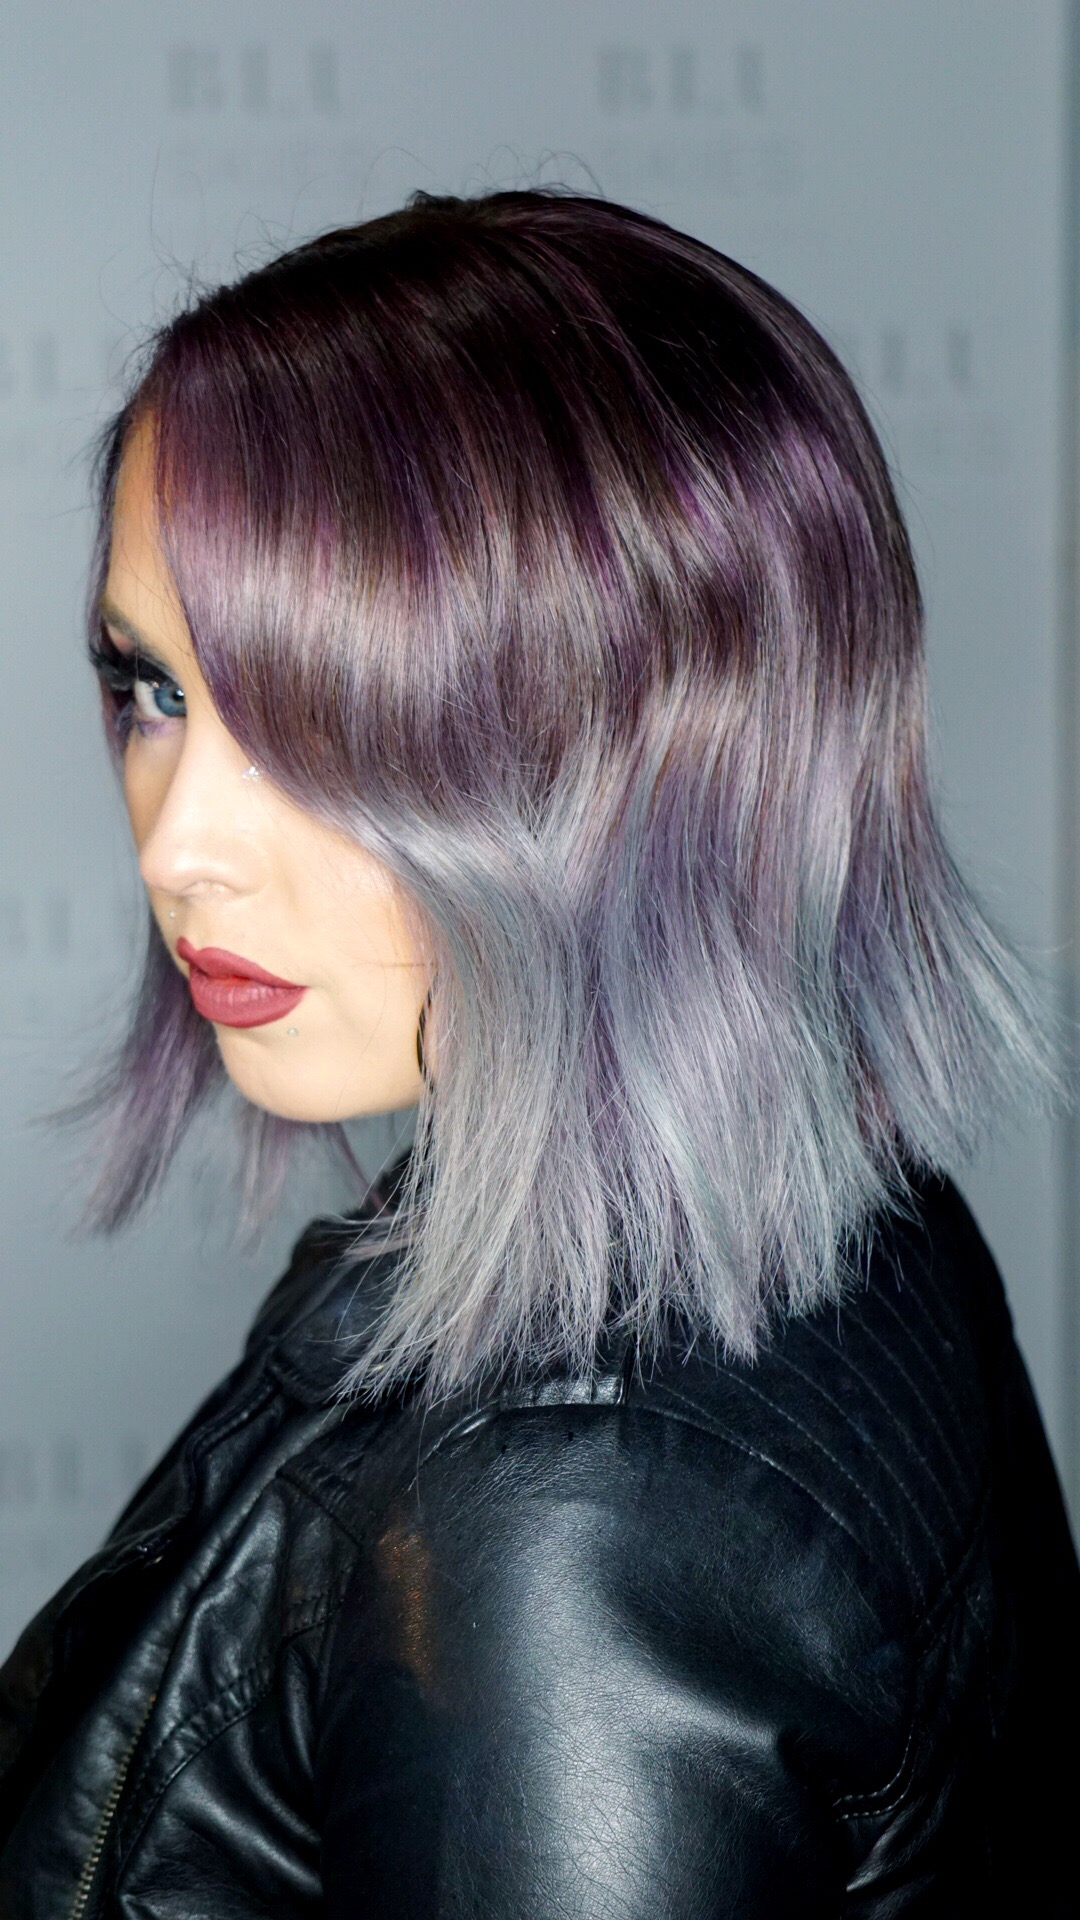 Vivid Coloring & Haircut